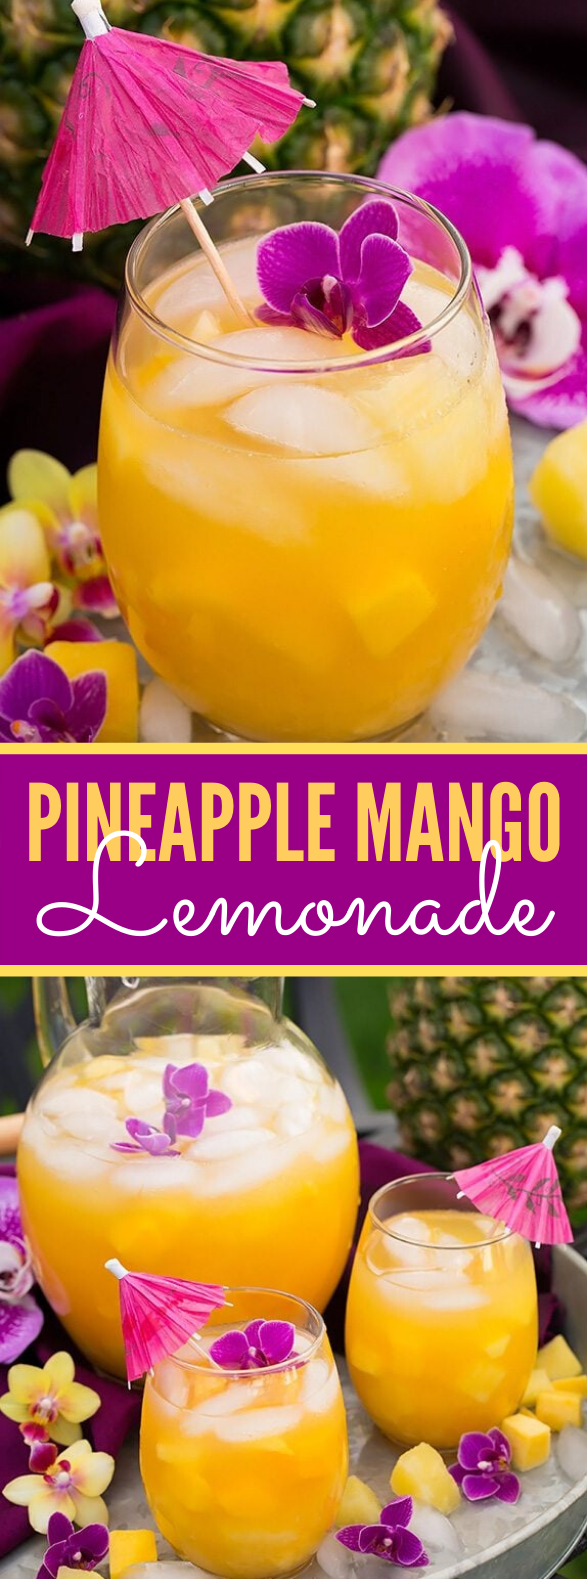 Pineapple Mango Lemonade #drinks #freshdrink